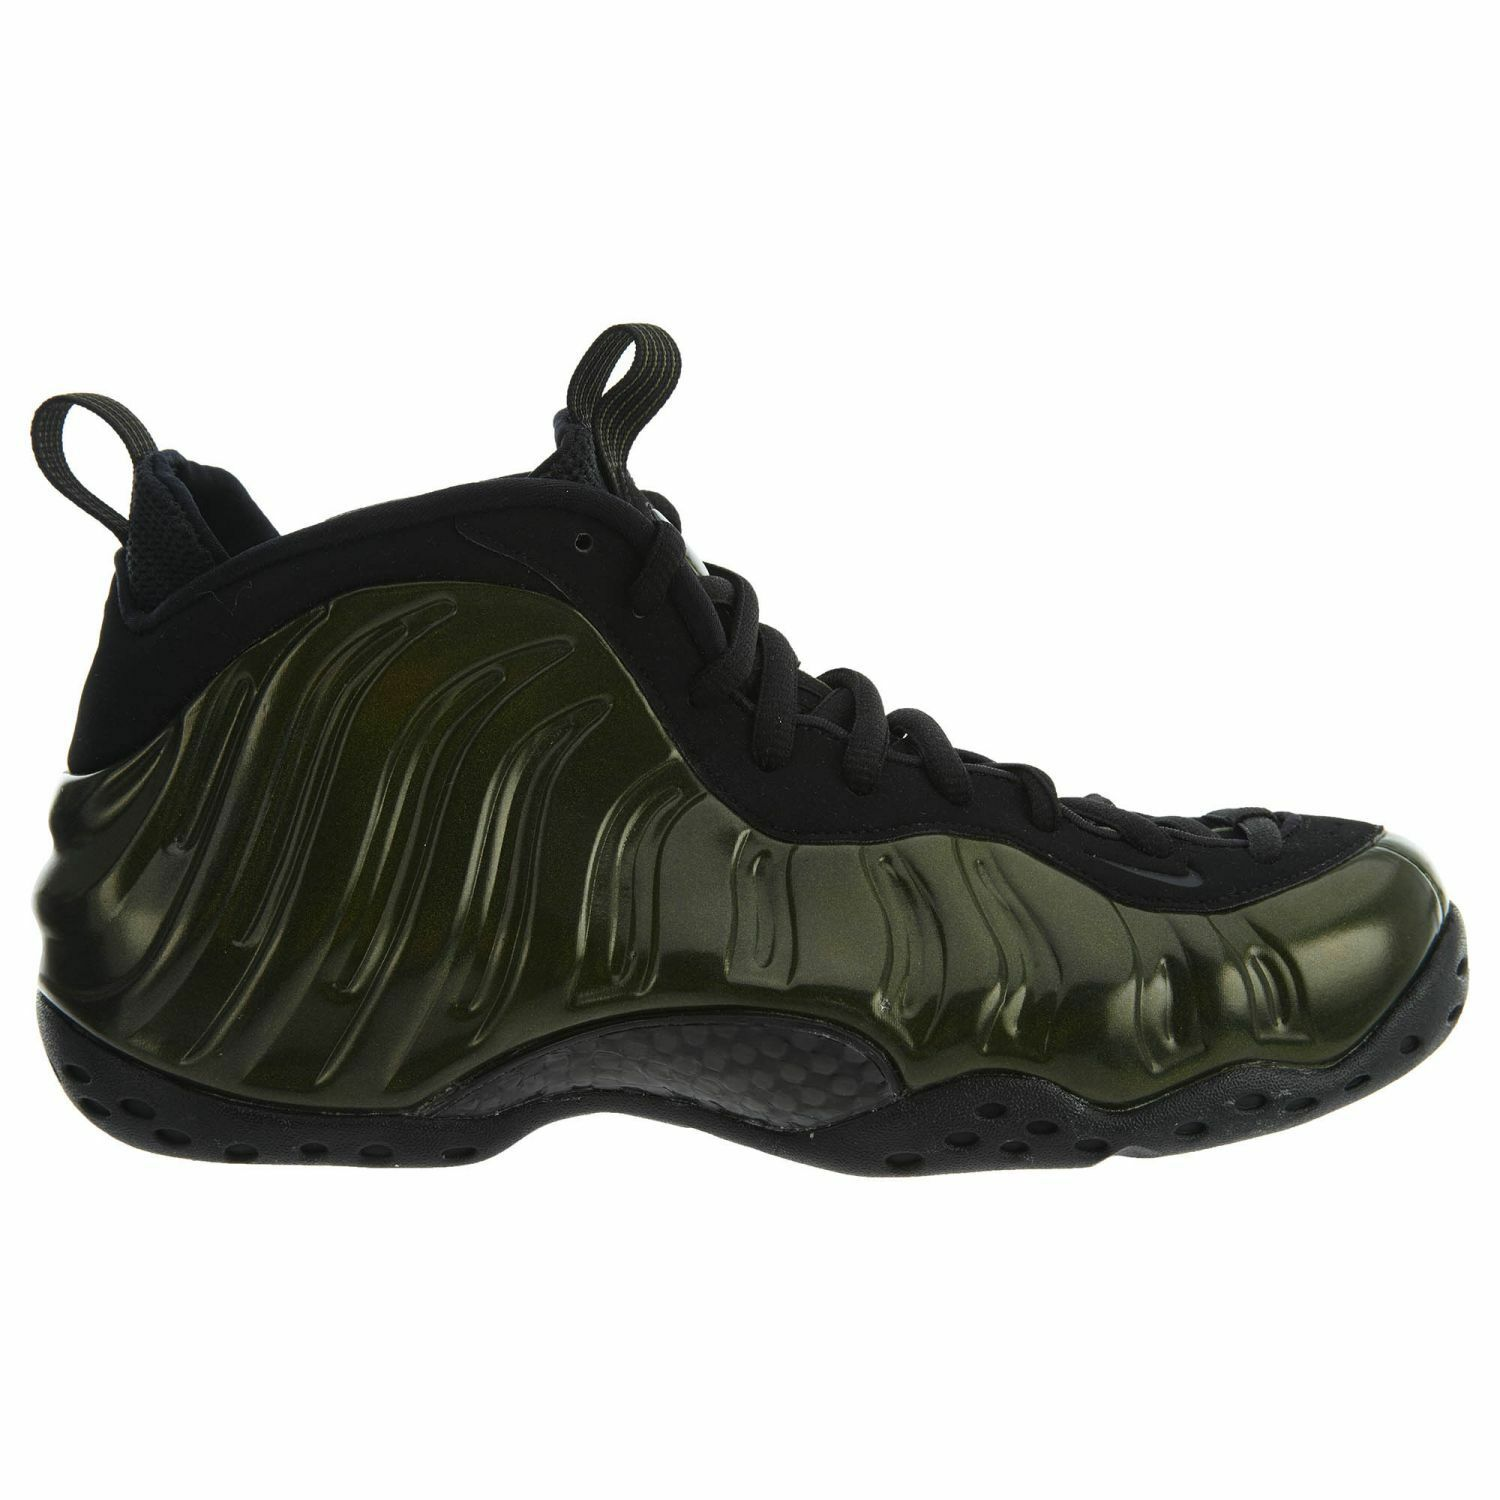 Nike Air Foamposite One Mens 314996-301 Legion Green Basketball Shoes Size 7.5